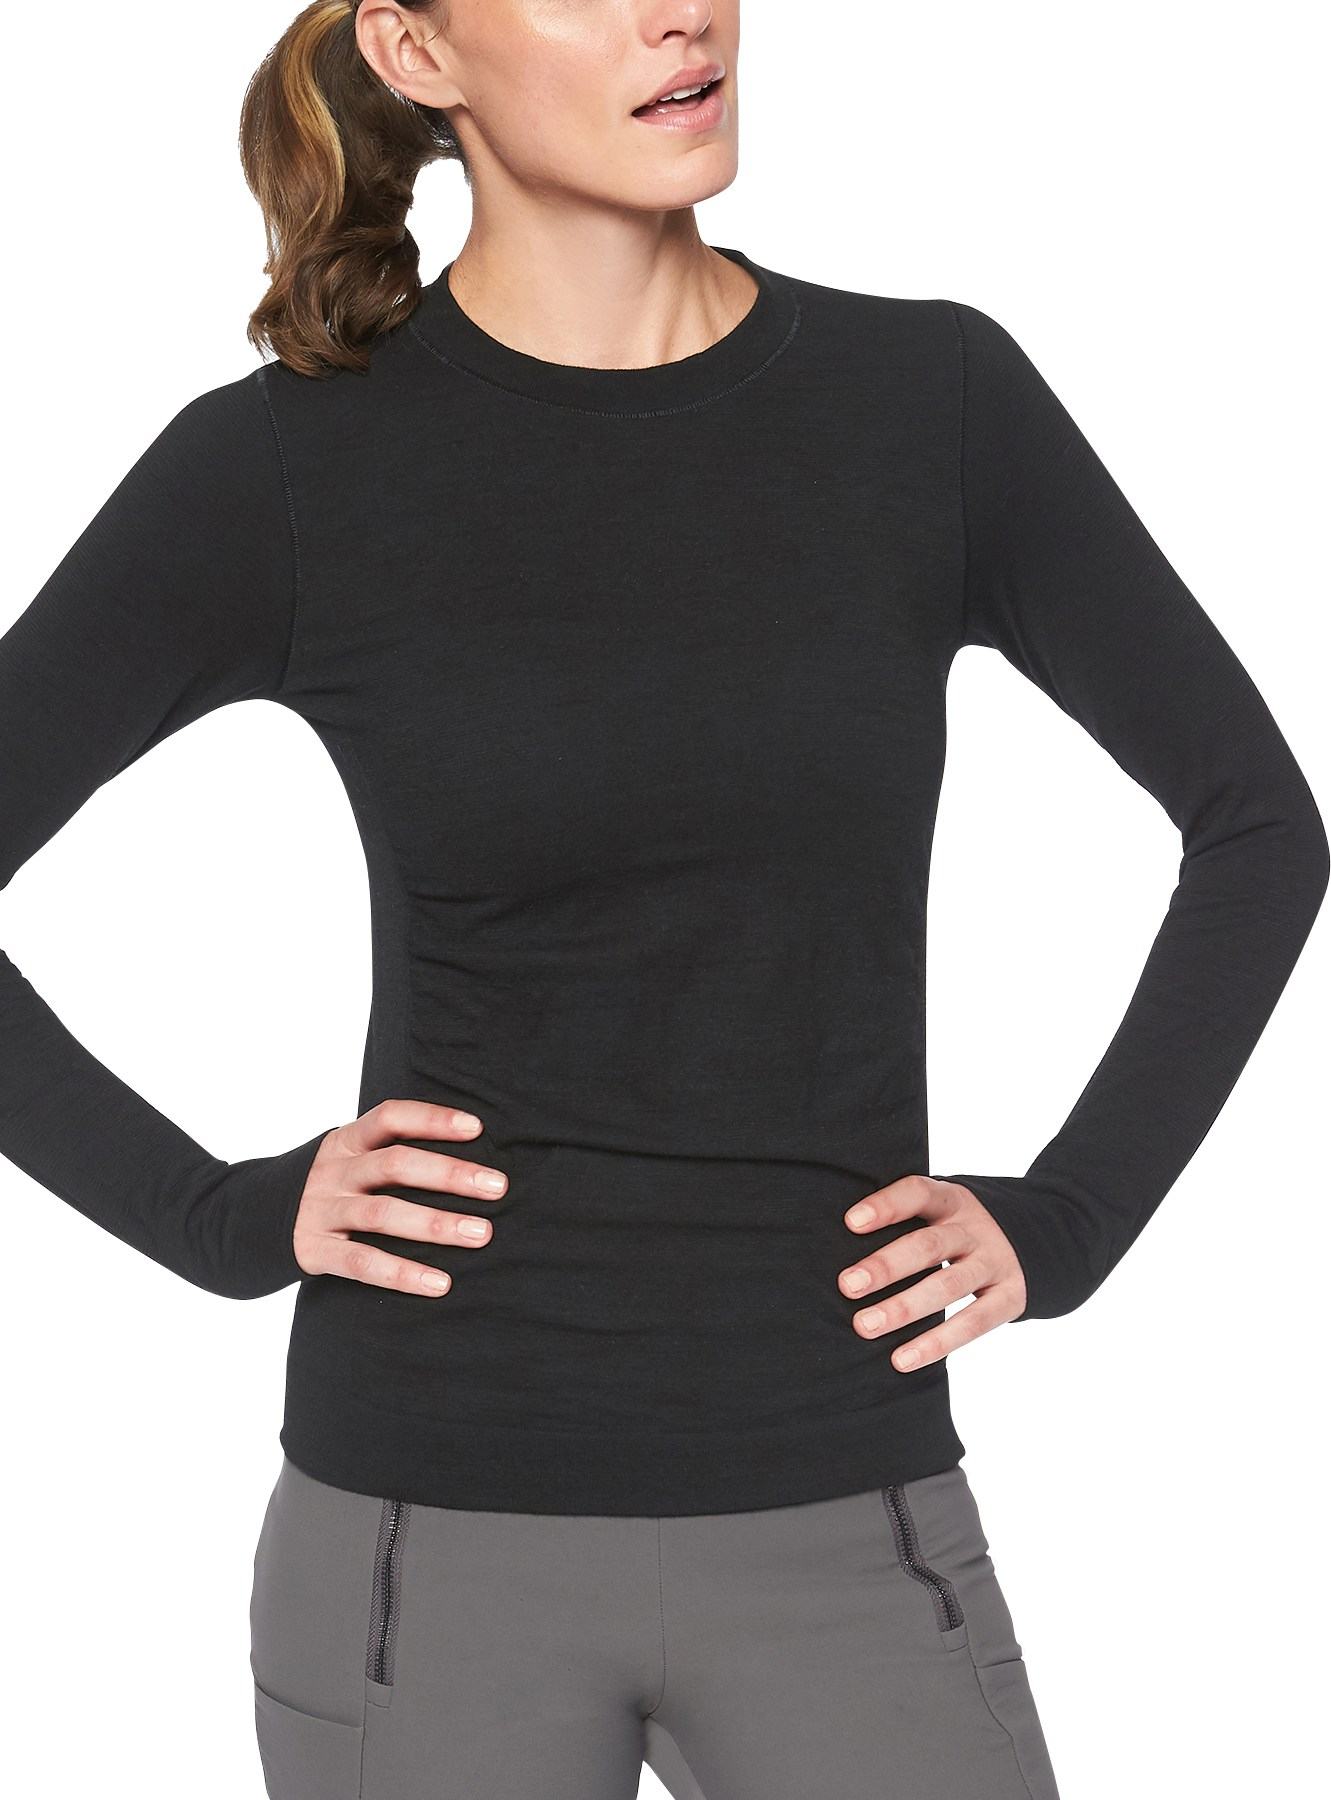 Athleta Foresthill Top - Women's